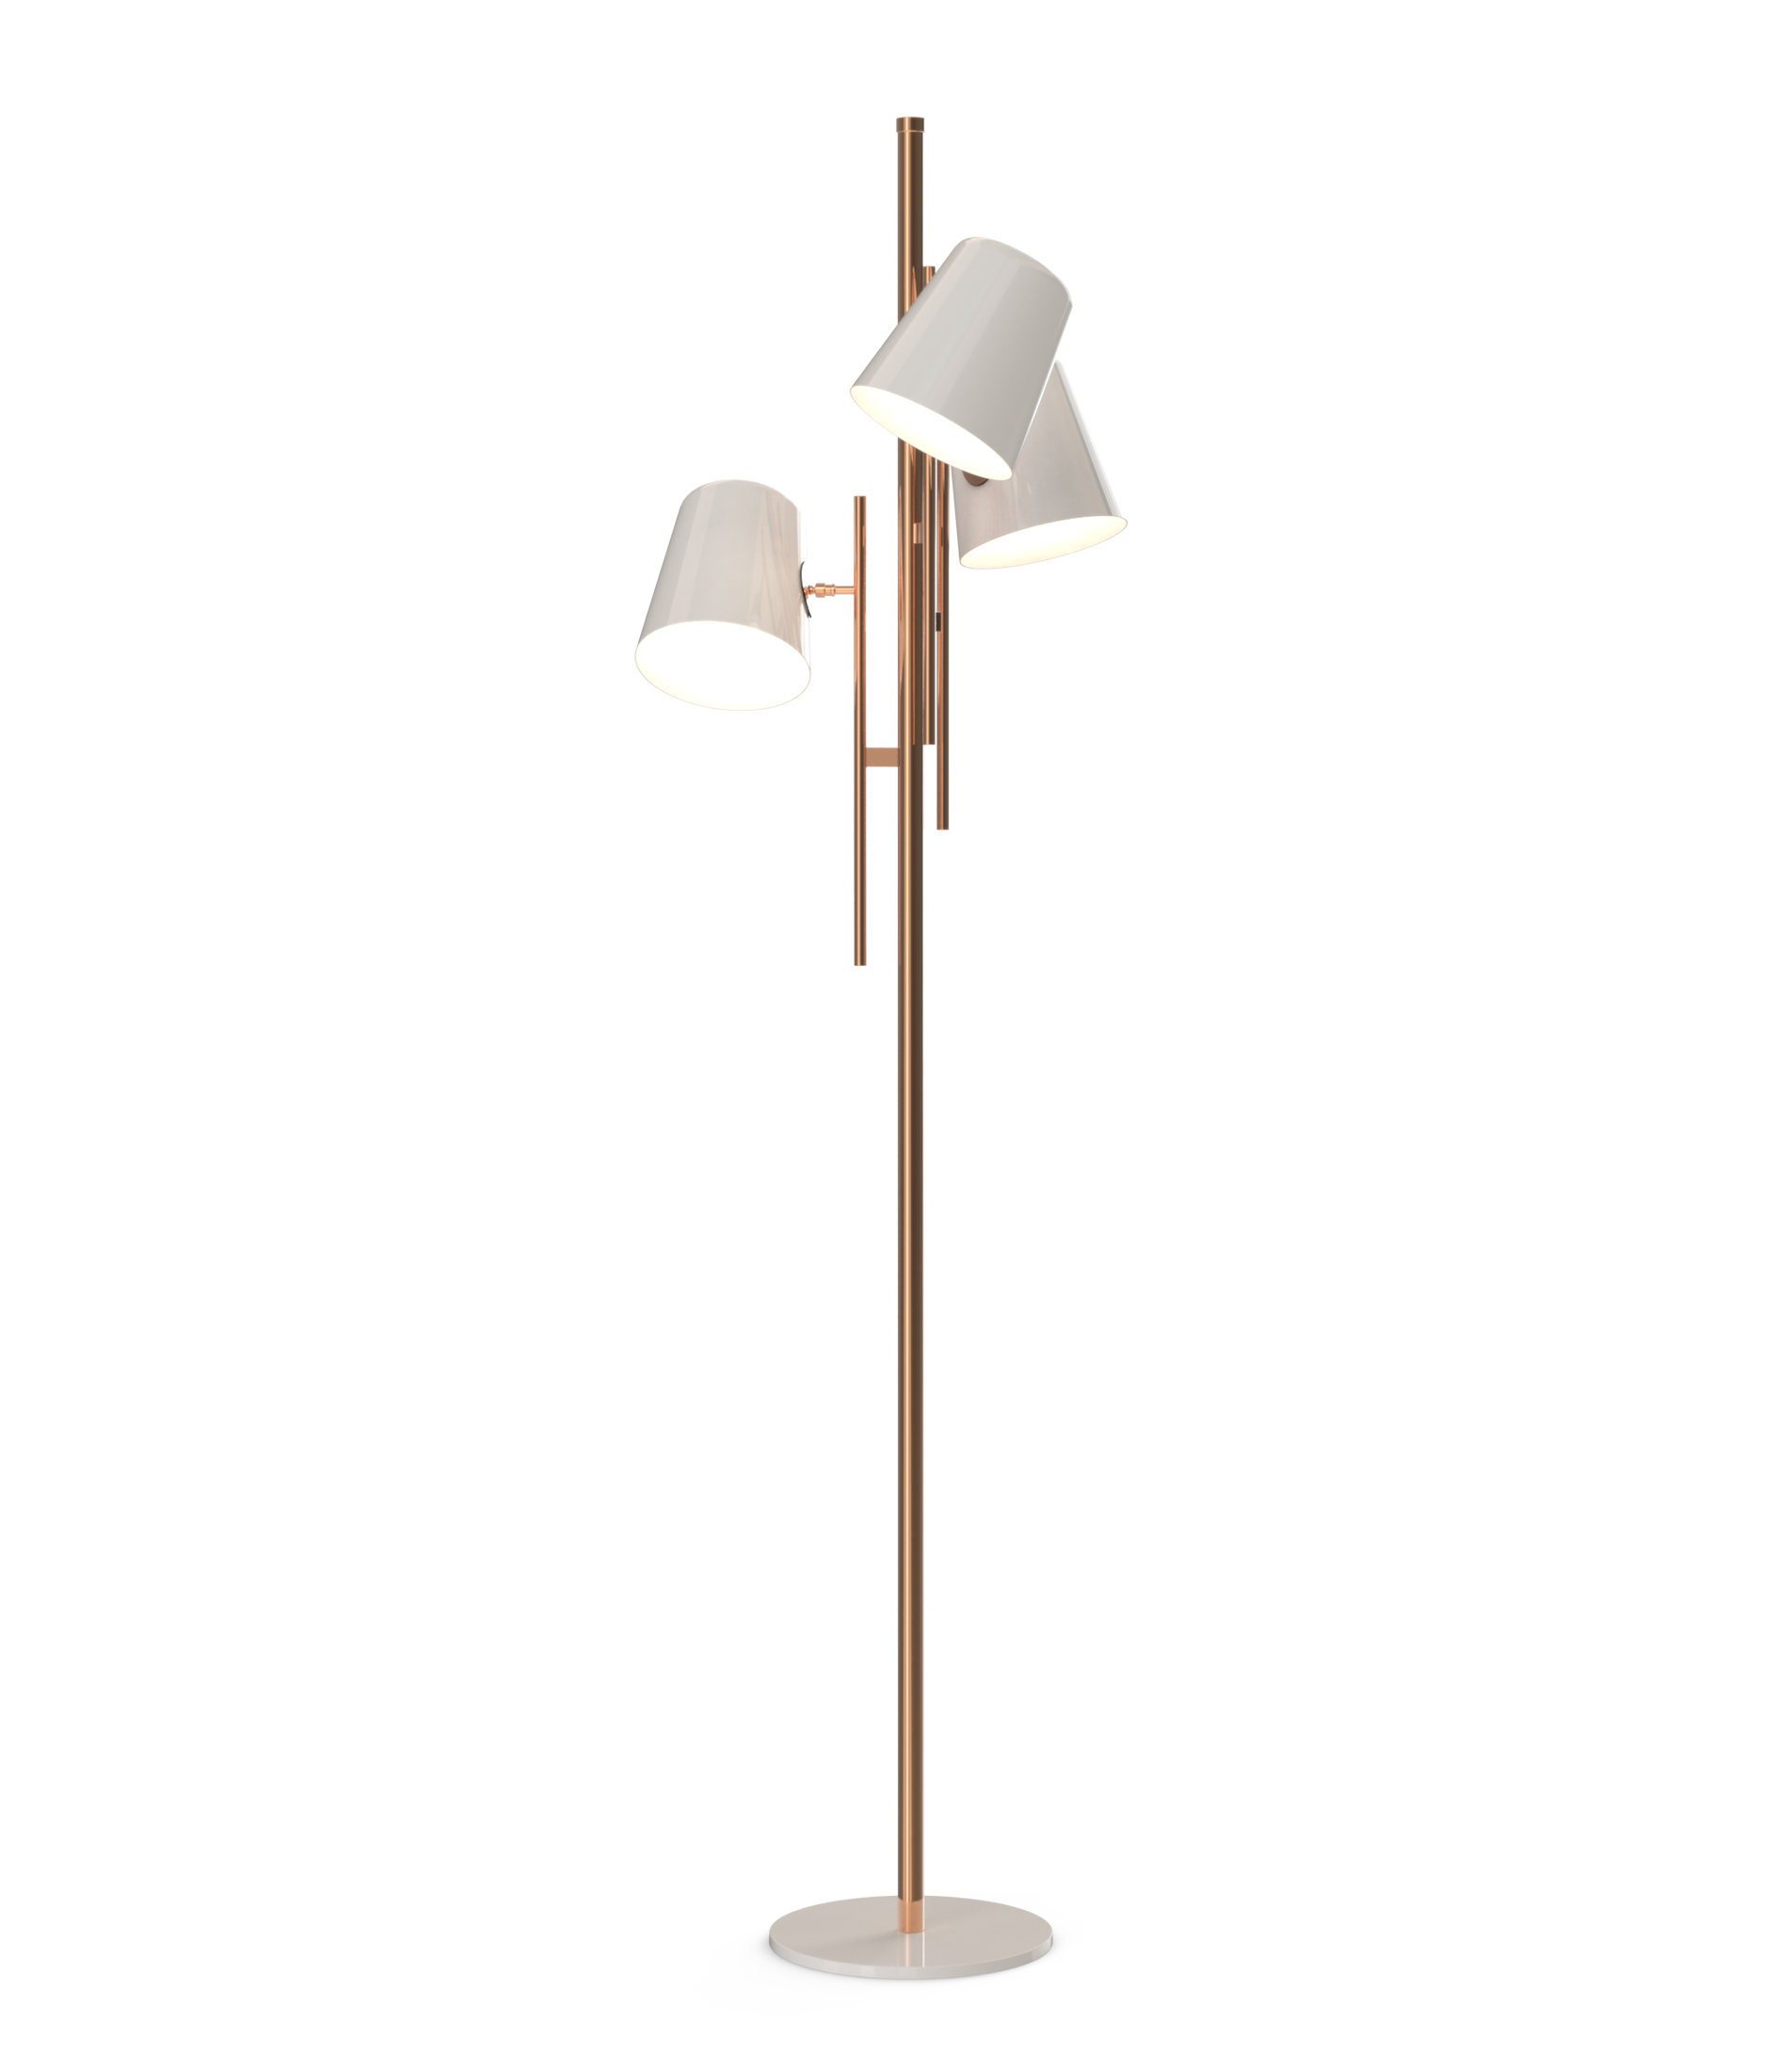 Stunning Modern Floor Lamps for Your Industrial Design (1)  Stunning Modern Floor Lamps for Your Industrial Design Stunning Modern Floor Lamps for Your Industrial Design 2